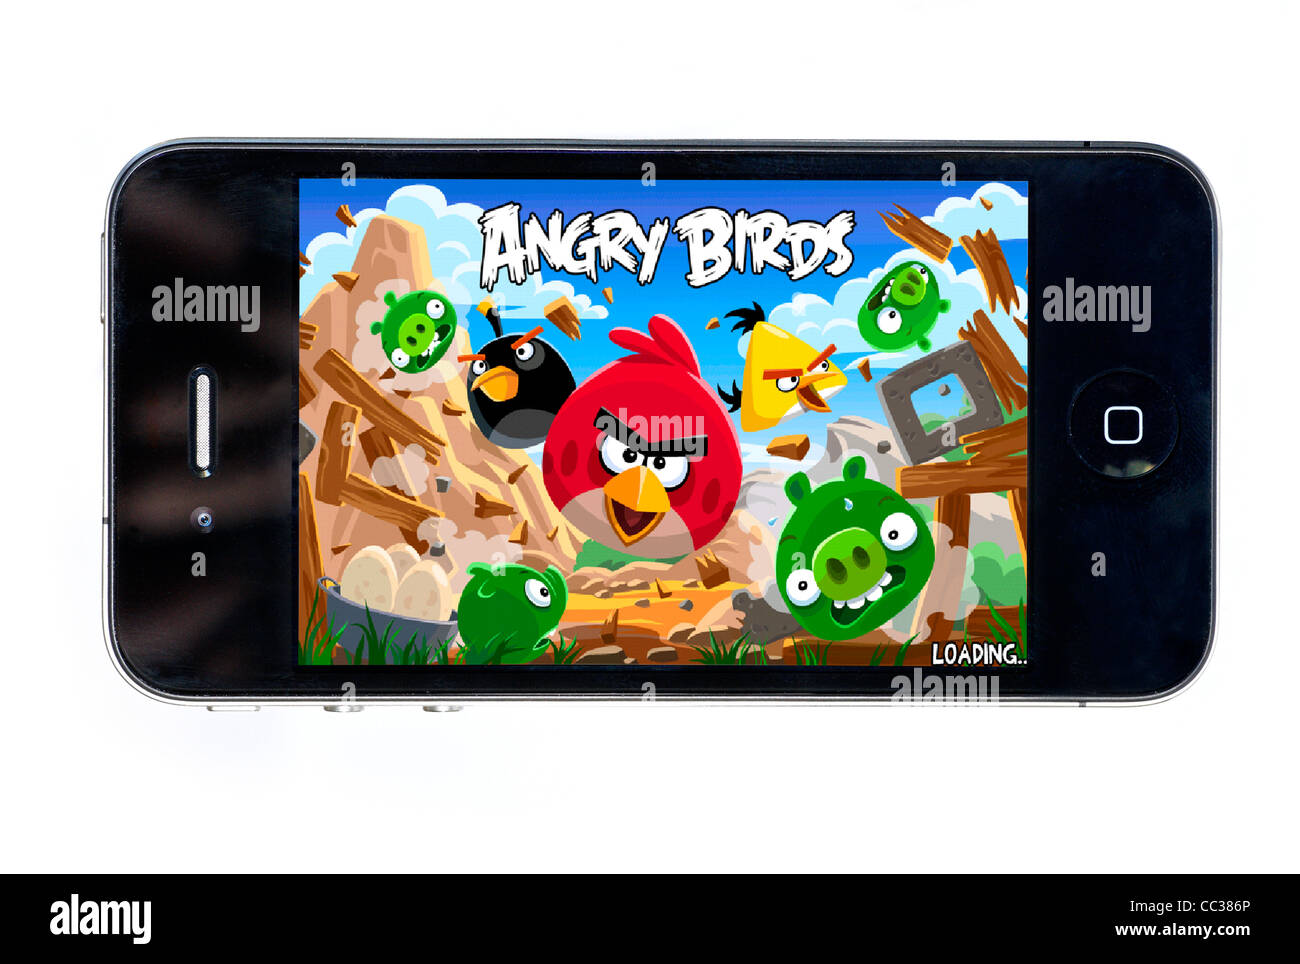 The hugely popular Angry Birds game on an Apple iPhone 4 - Stock Image